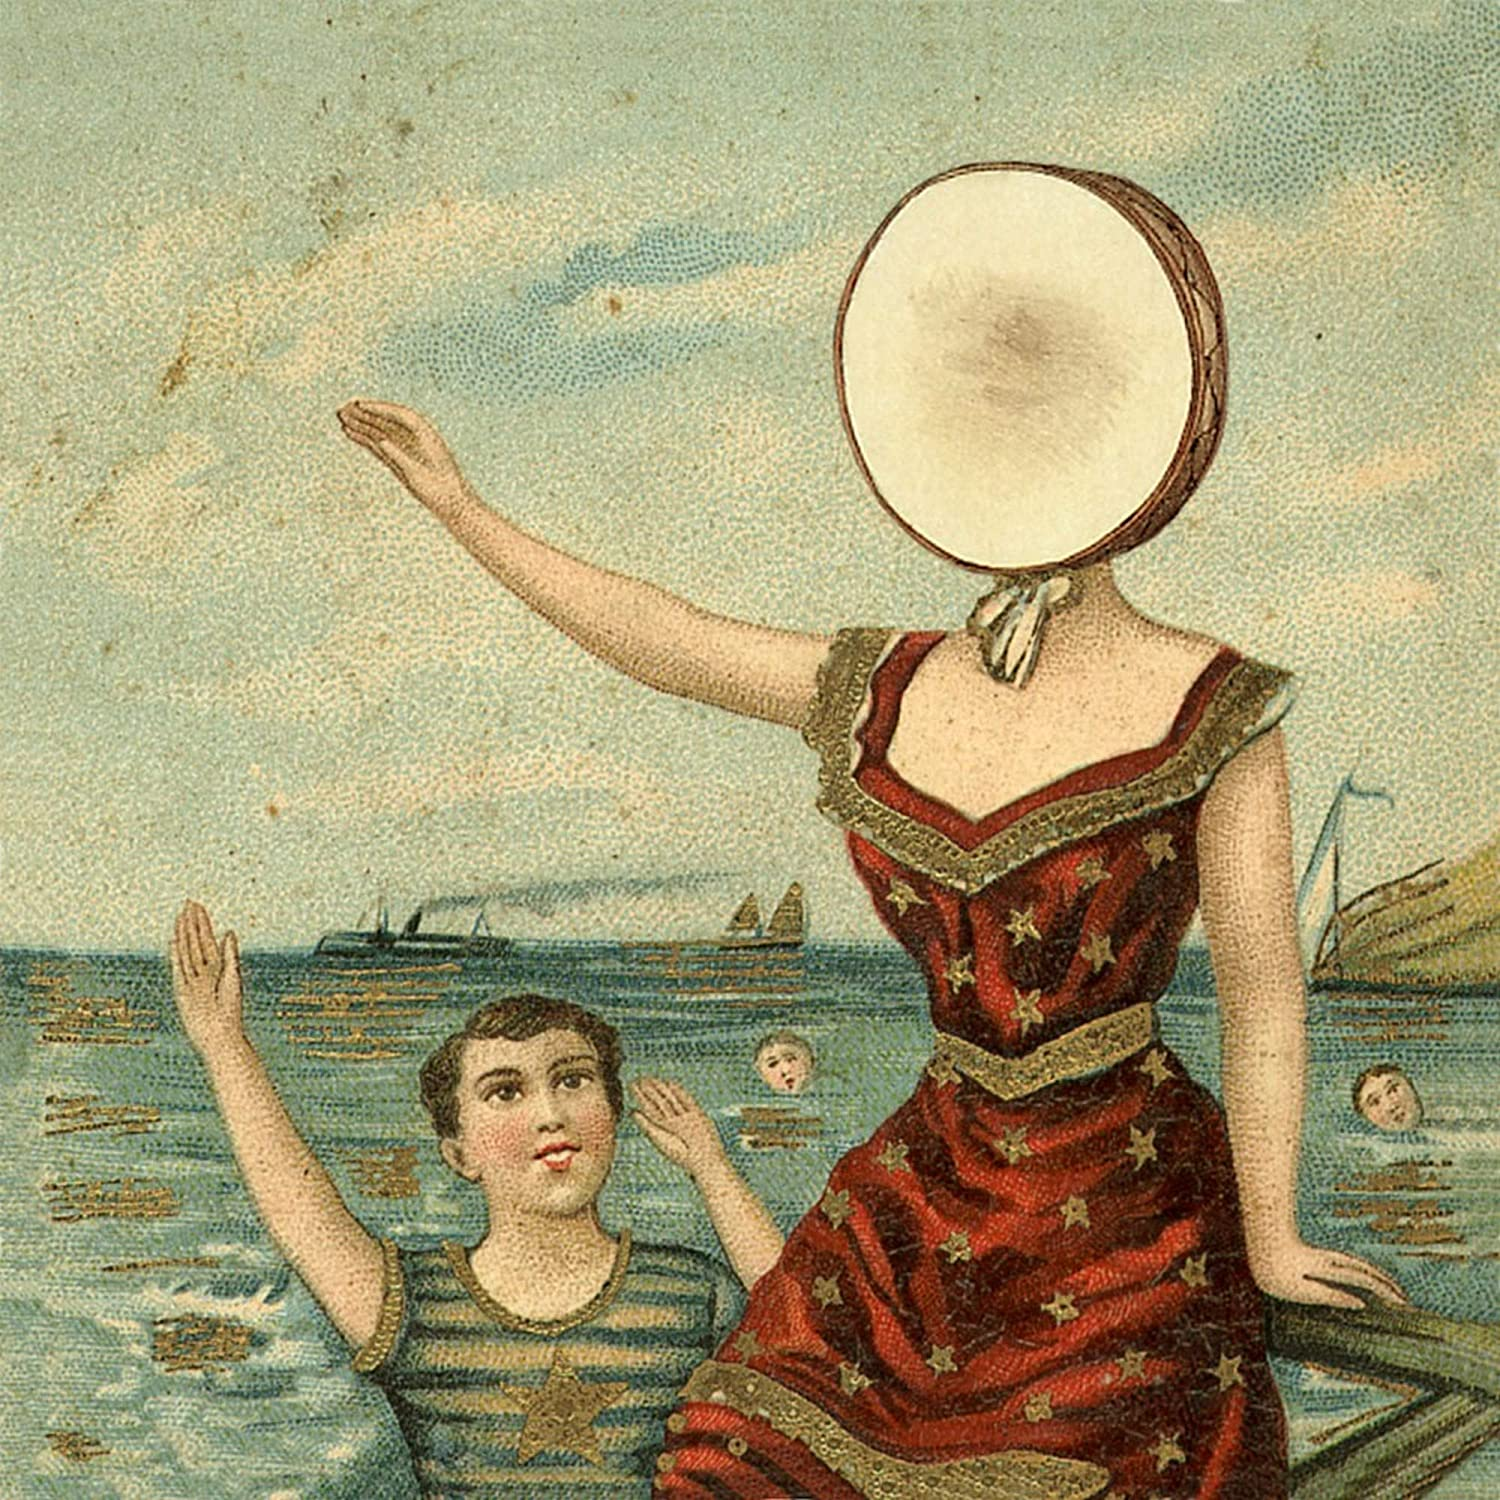 502 In The Aeroplane Over The Sea by Neutral Milk Hotel